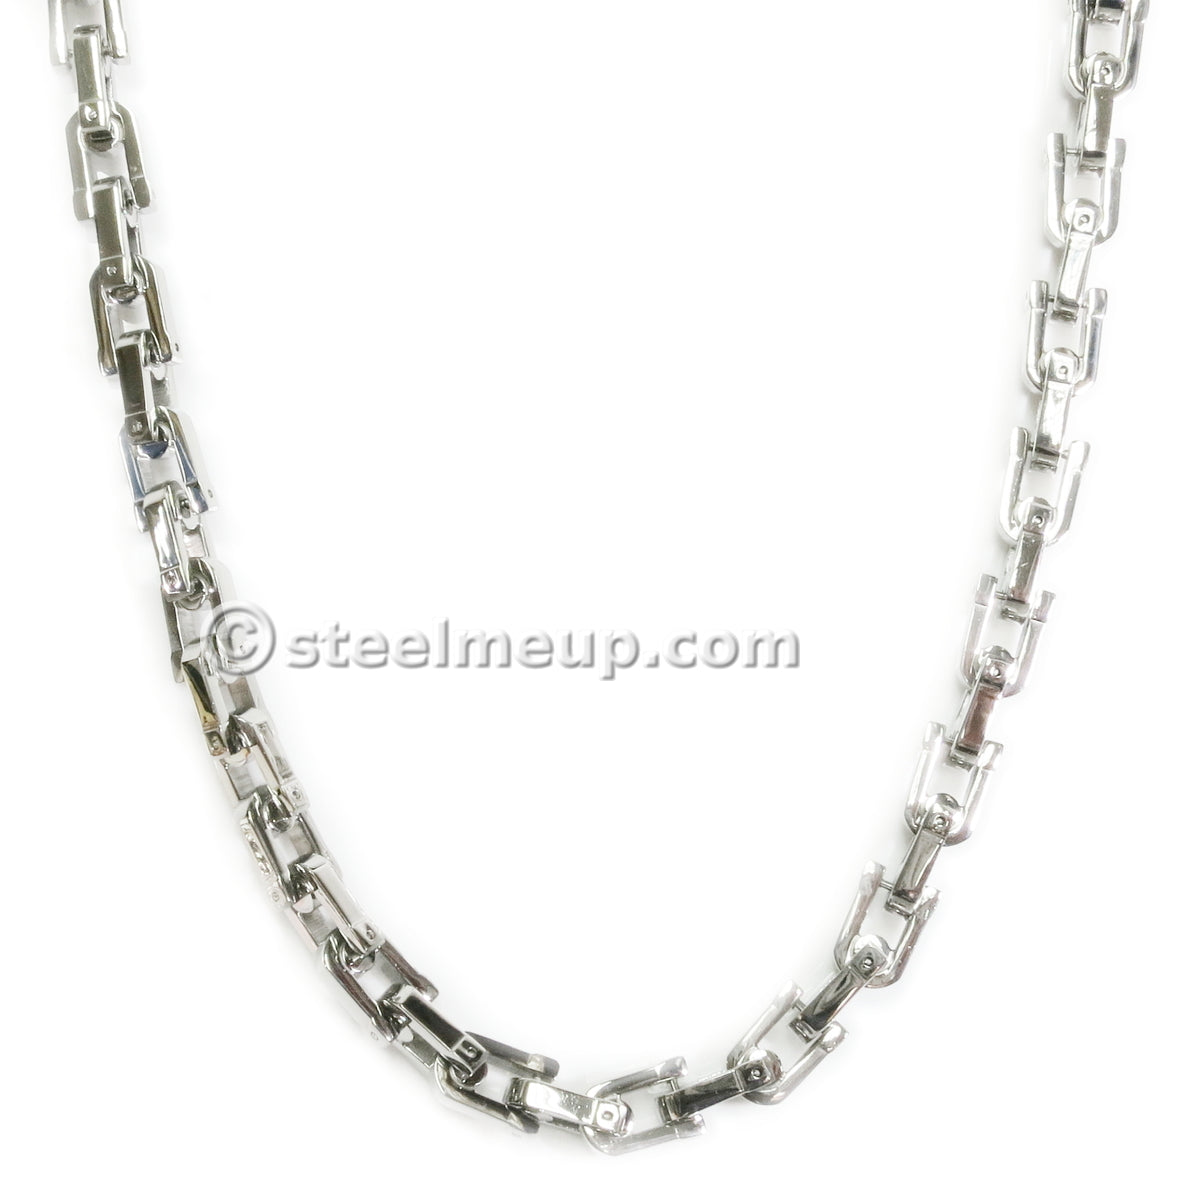 Stainless Steel Thick Link Chain Necklace 9mm